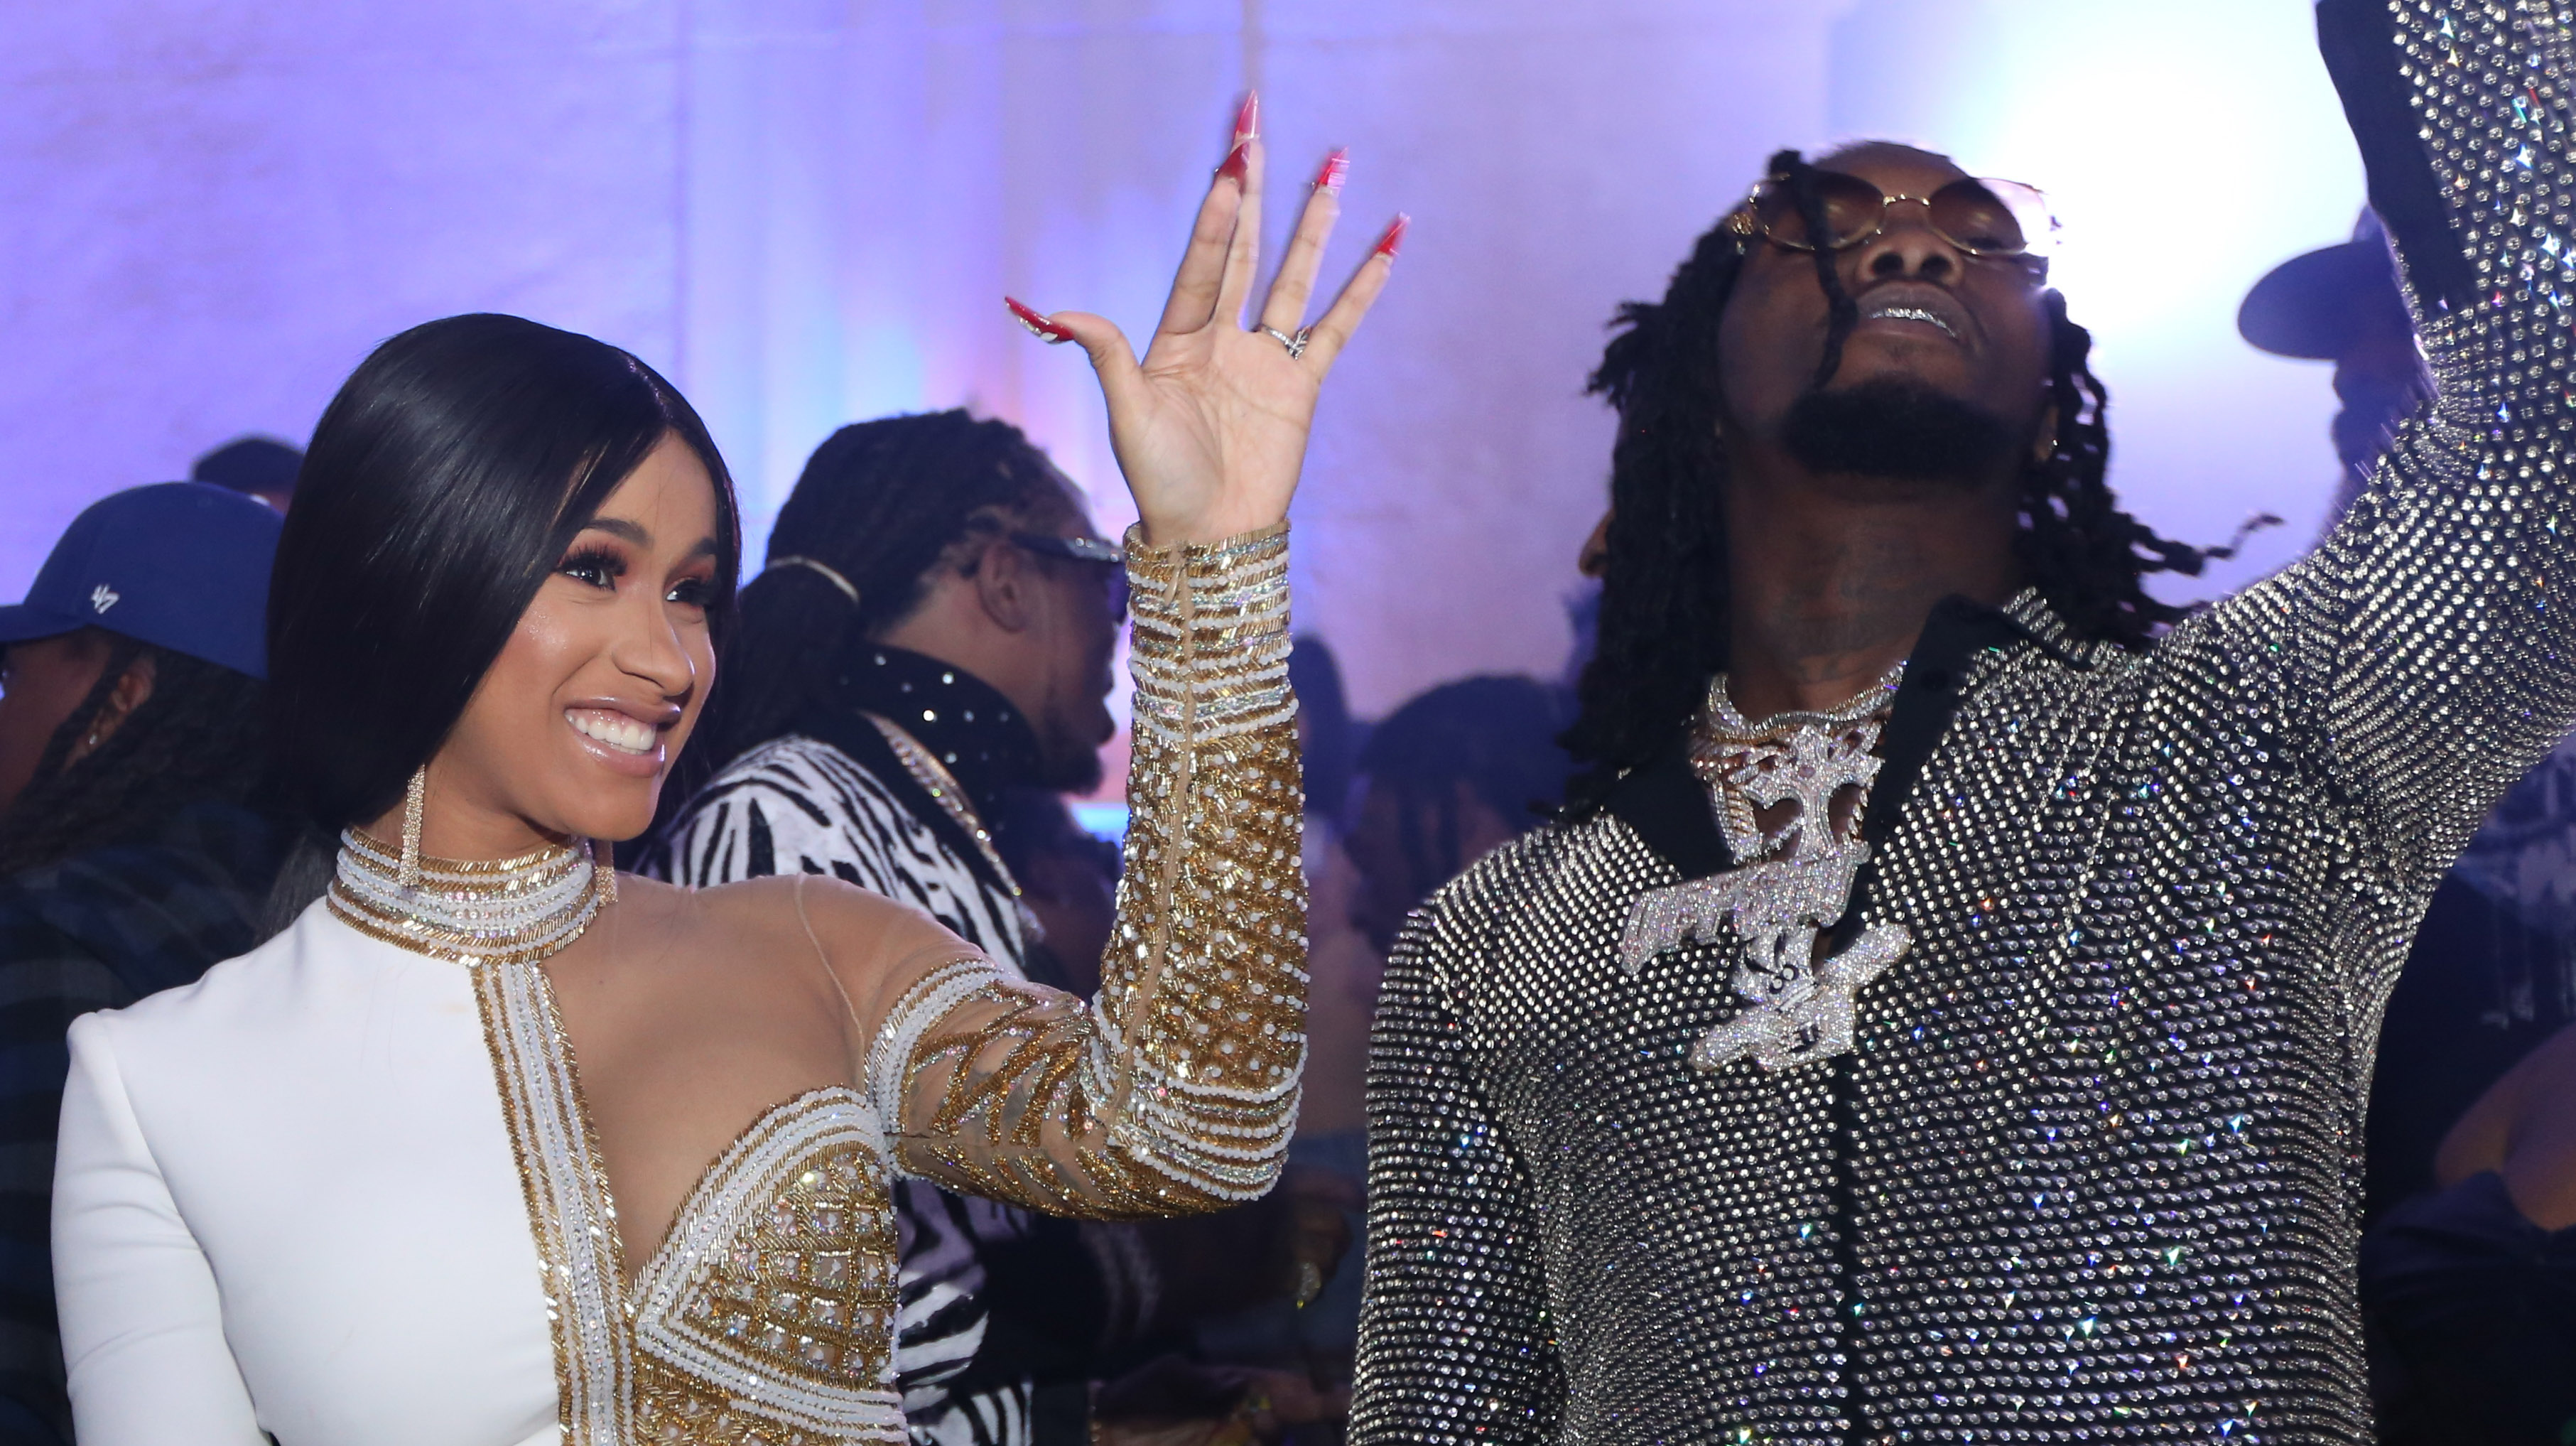 This Dedicated Cardi B Fan Made Their Love Very Permanent: Cardi B And Offset Share NSFW Instagram Live Video